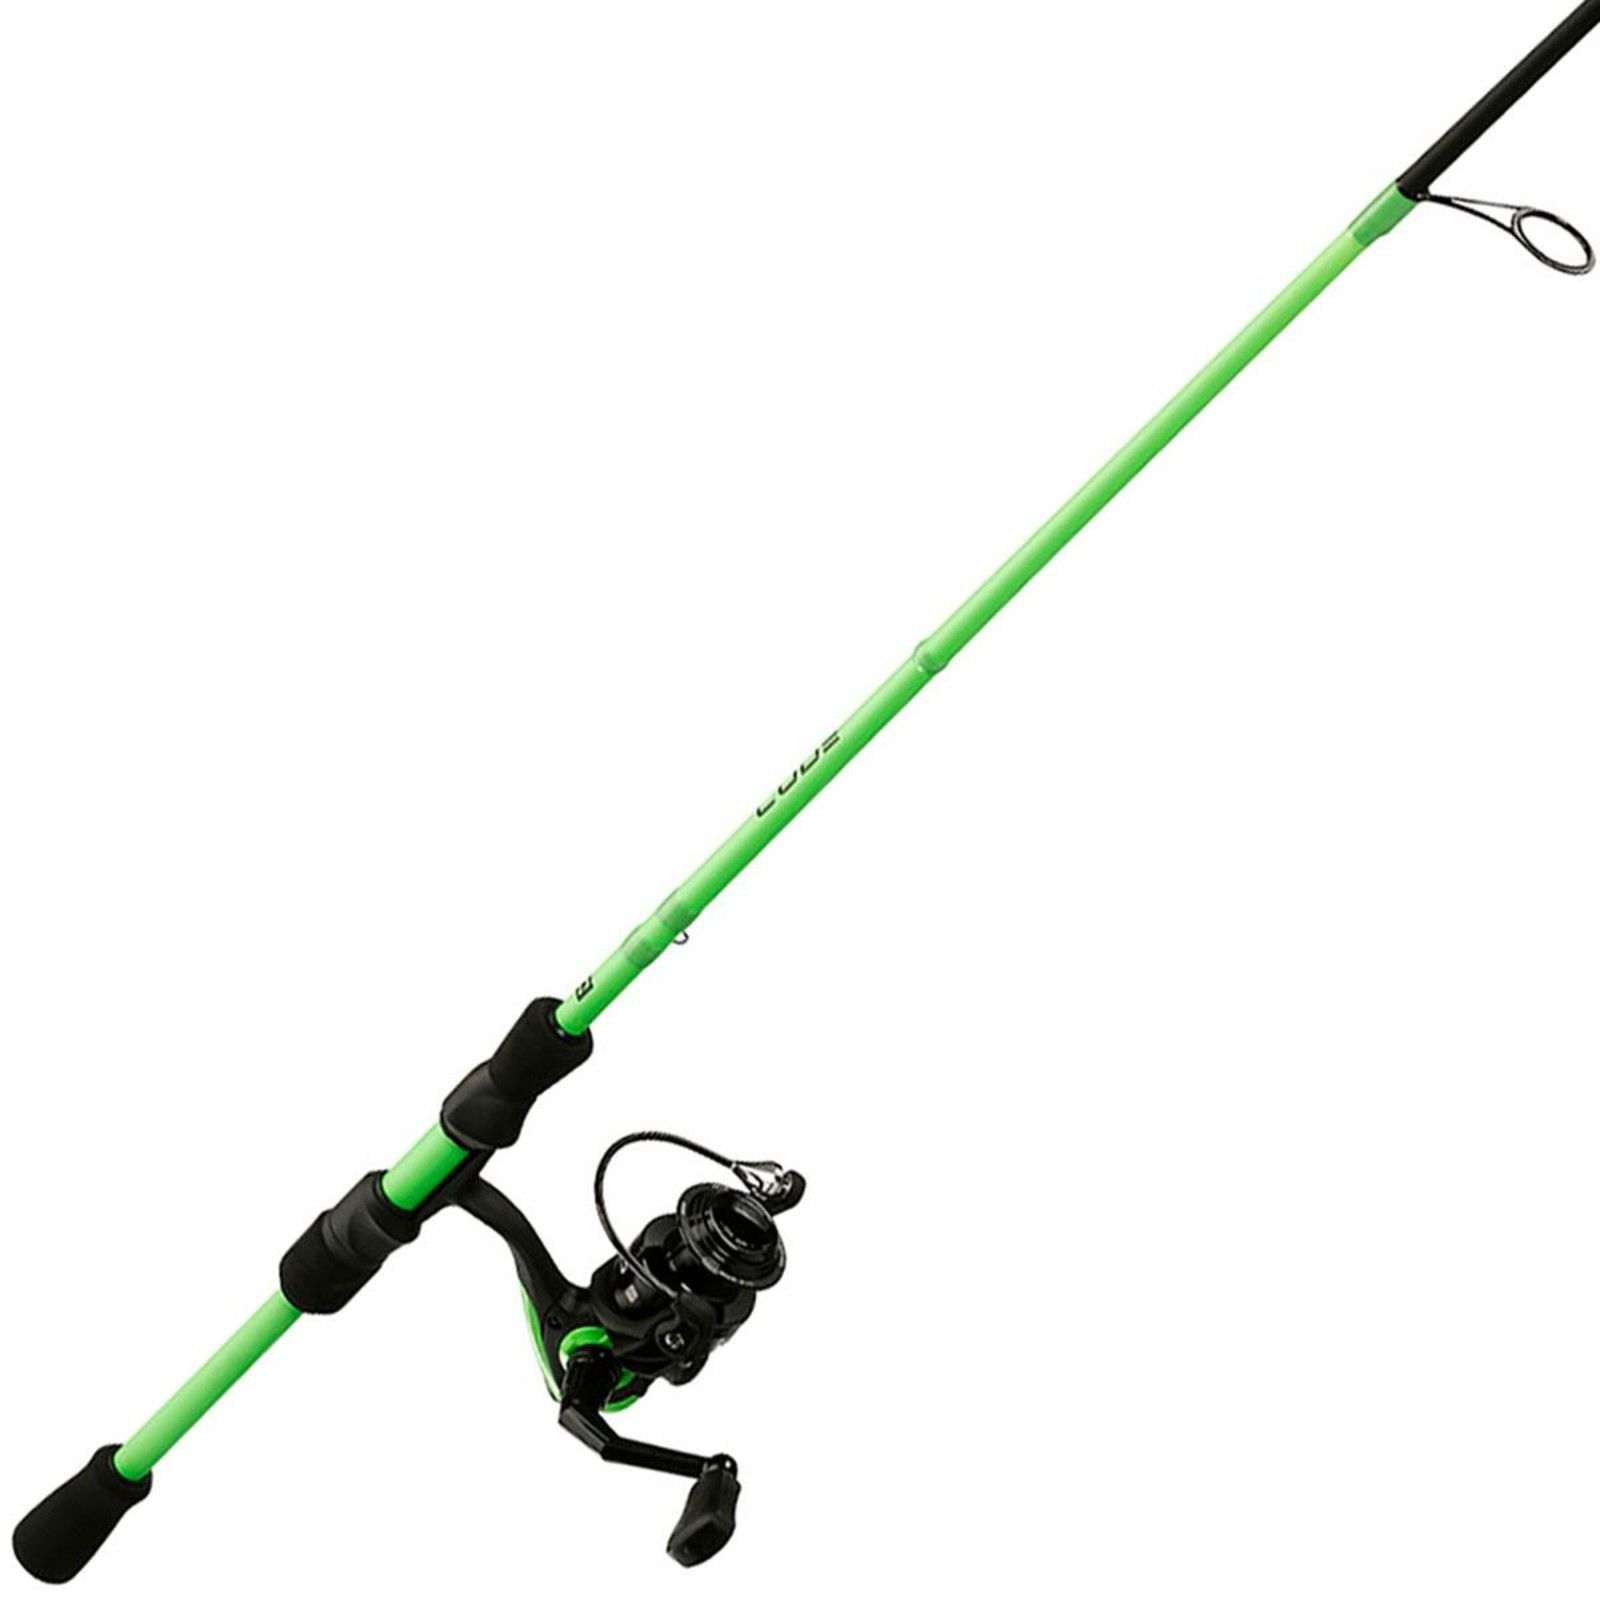 13 Fishing Code Neon Spinning Combo, Black thumbnail